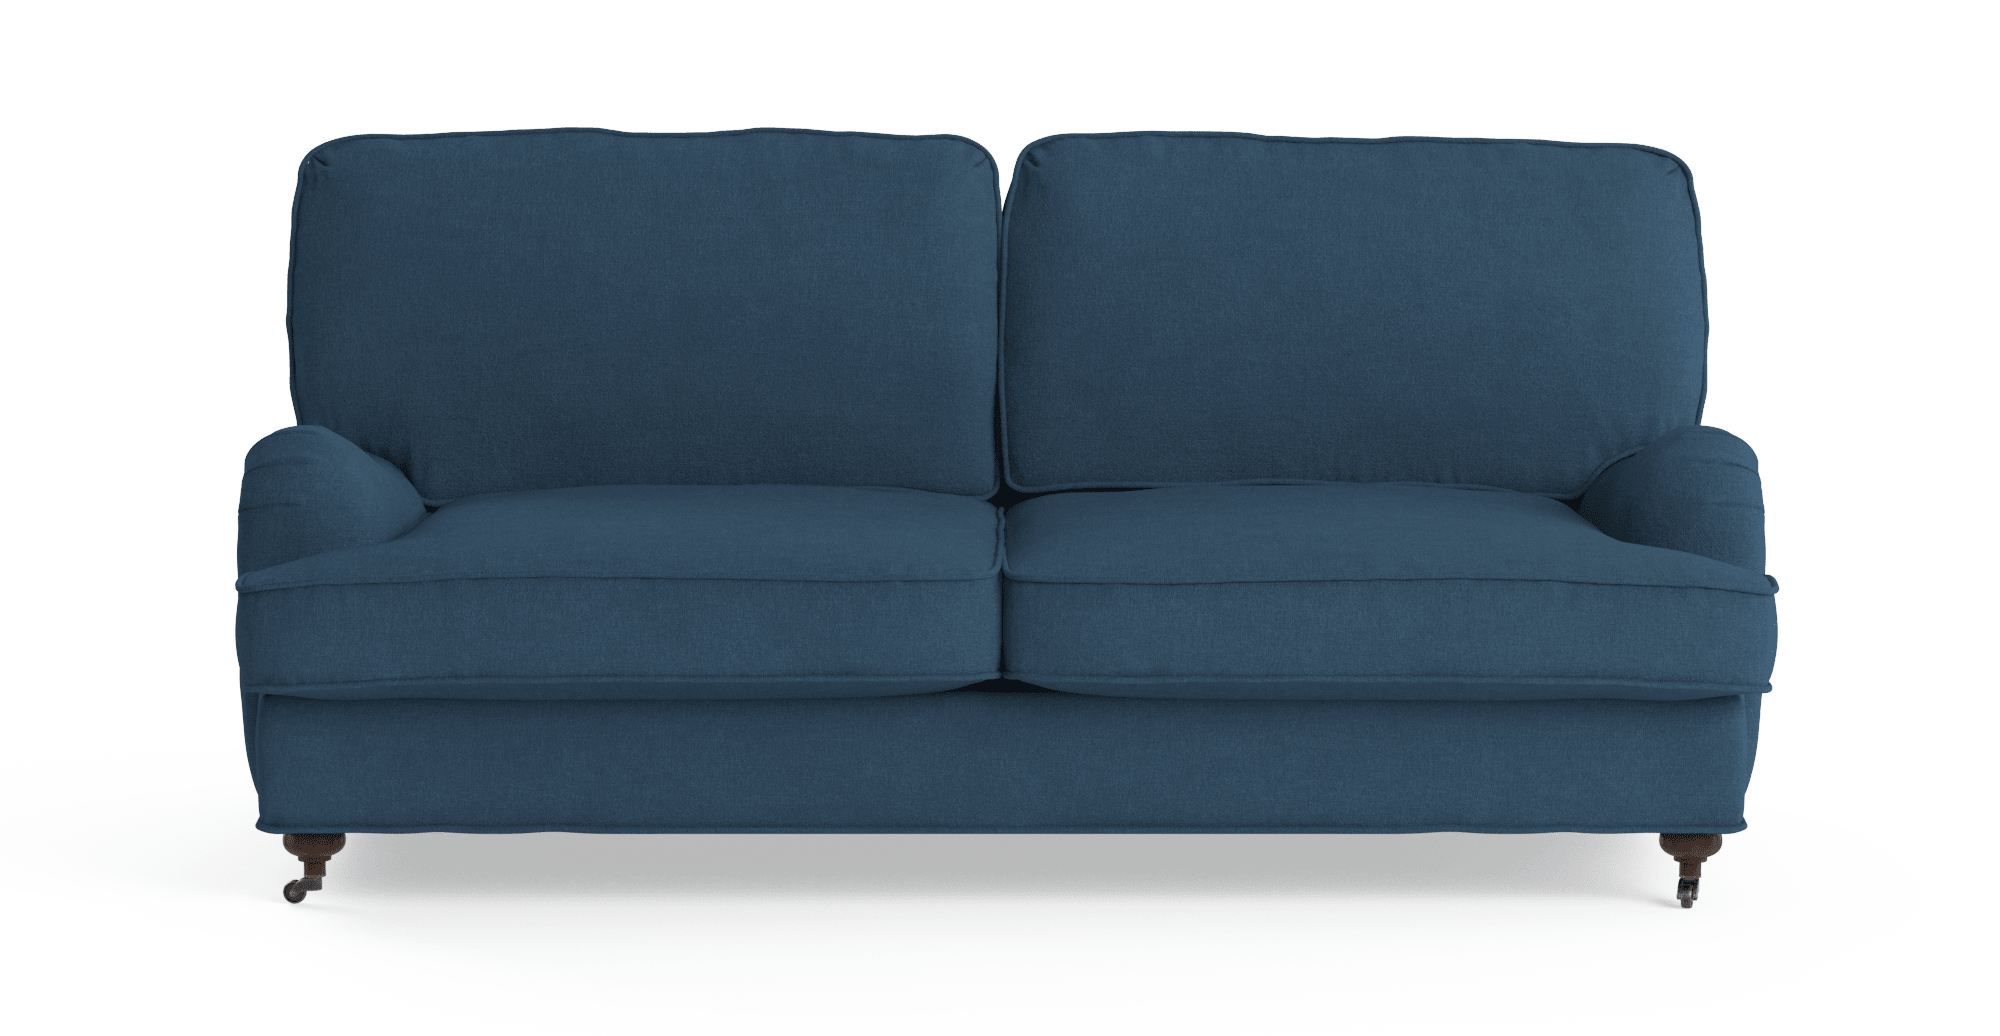 Couch back view png. Buy amelia seater sofa